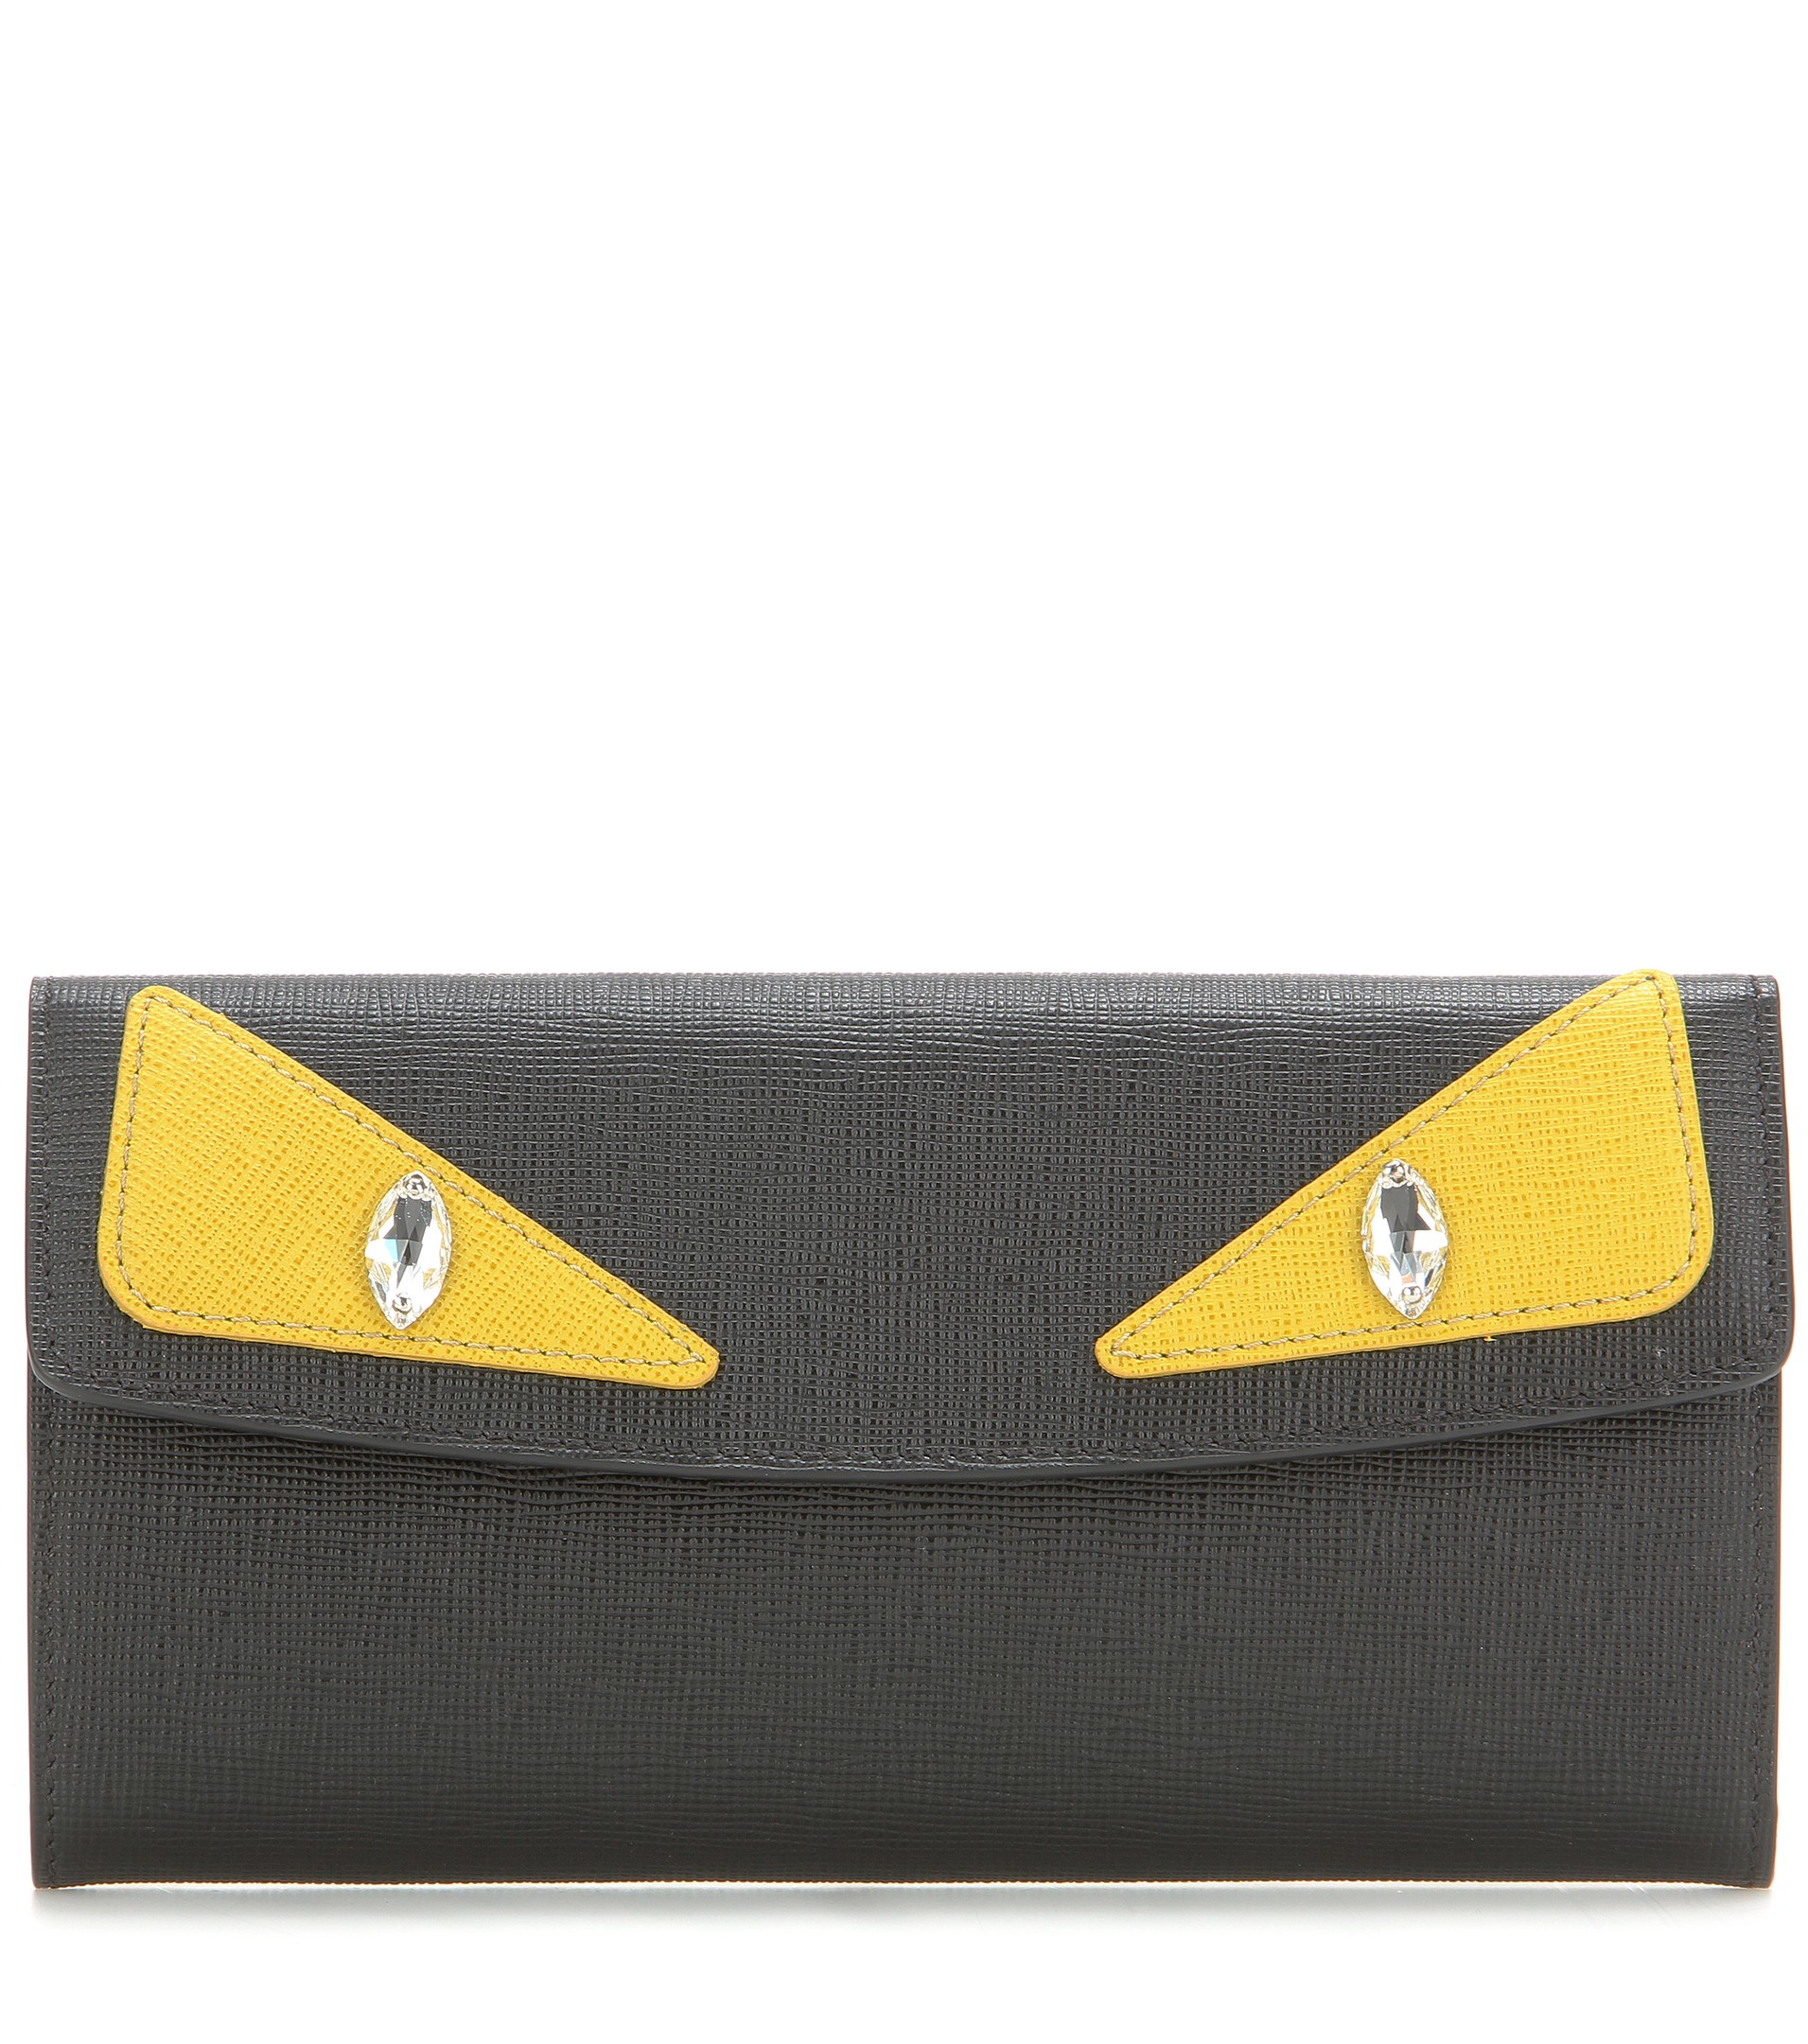 3ba43468cf96 Lyst - Fendi Leather Bug Wallet - Black in Black